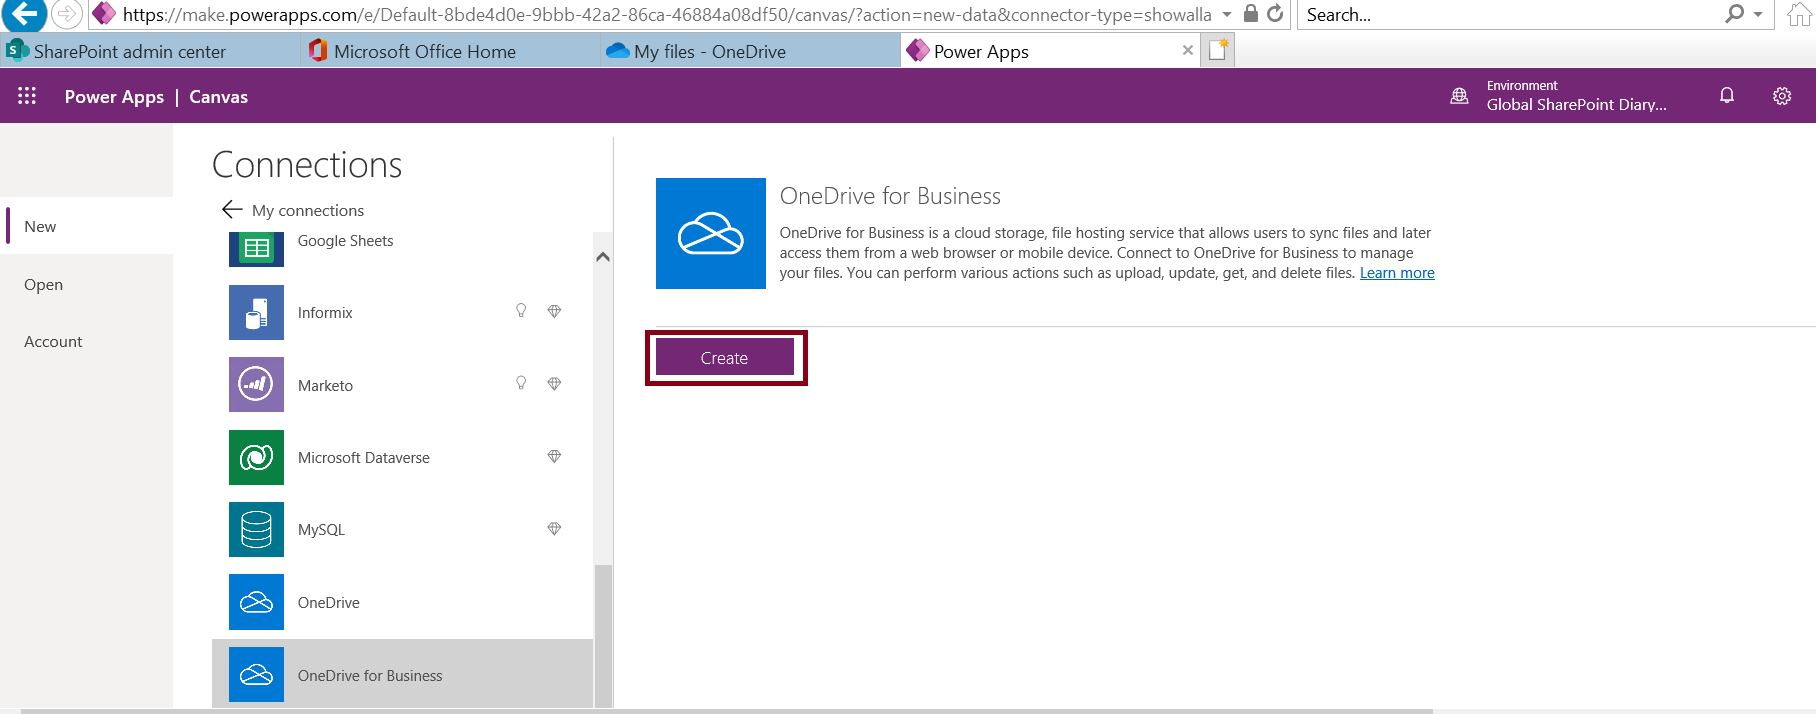 Create OneDrive for business connection in PowerApps